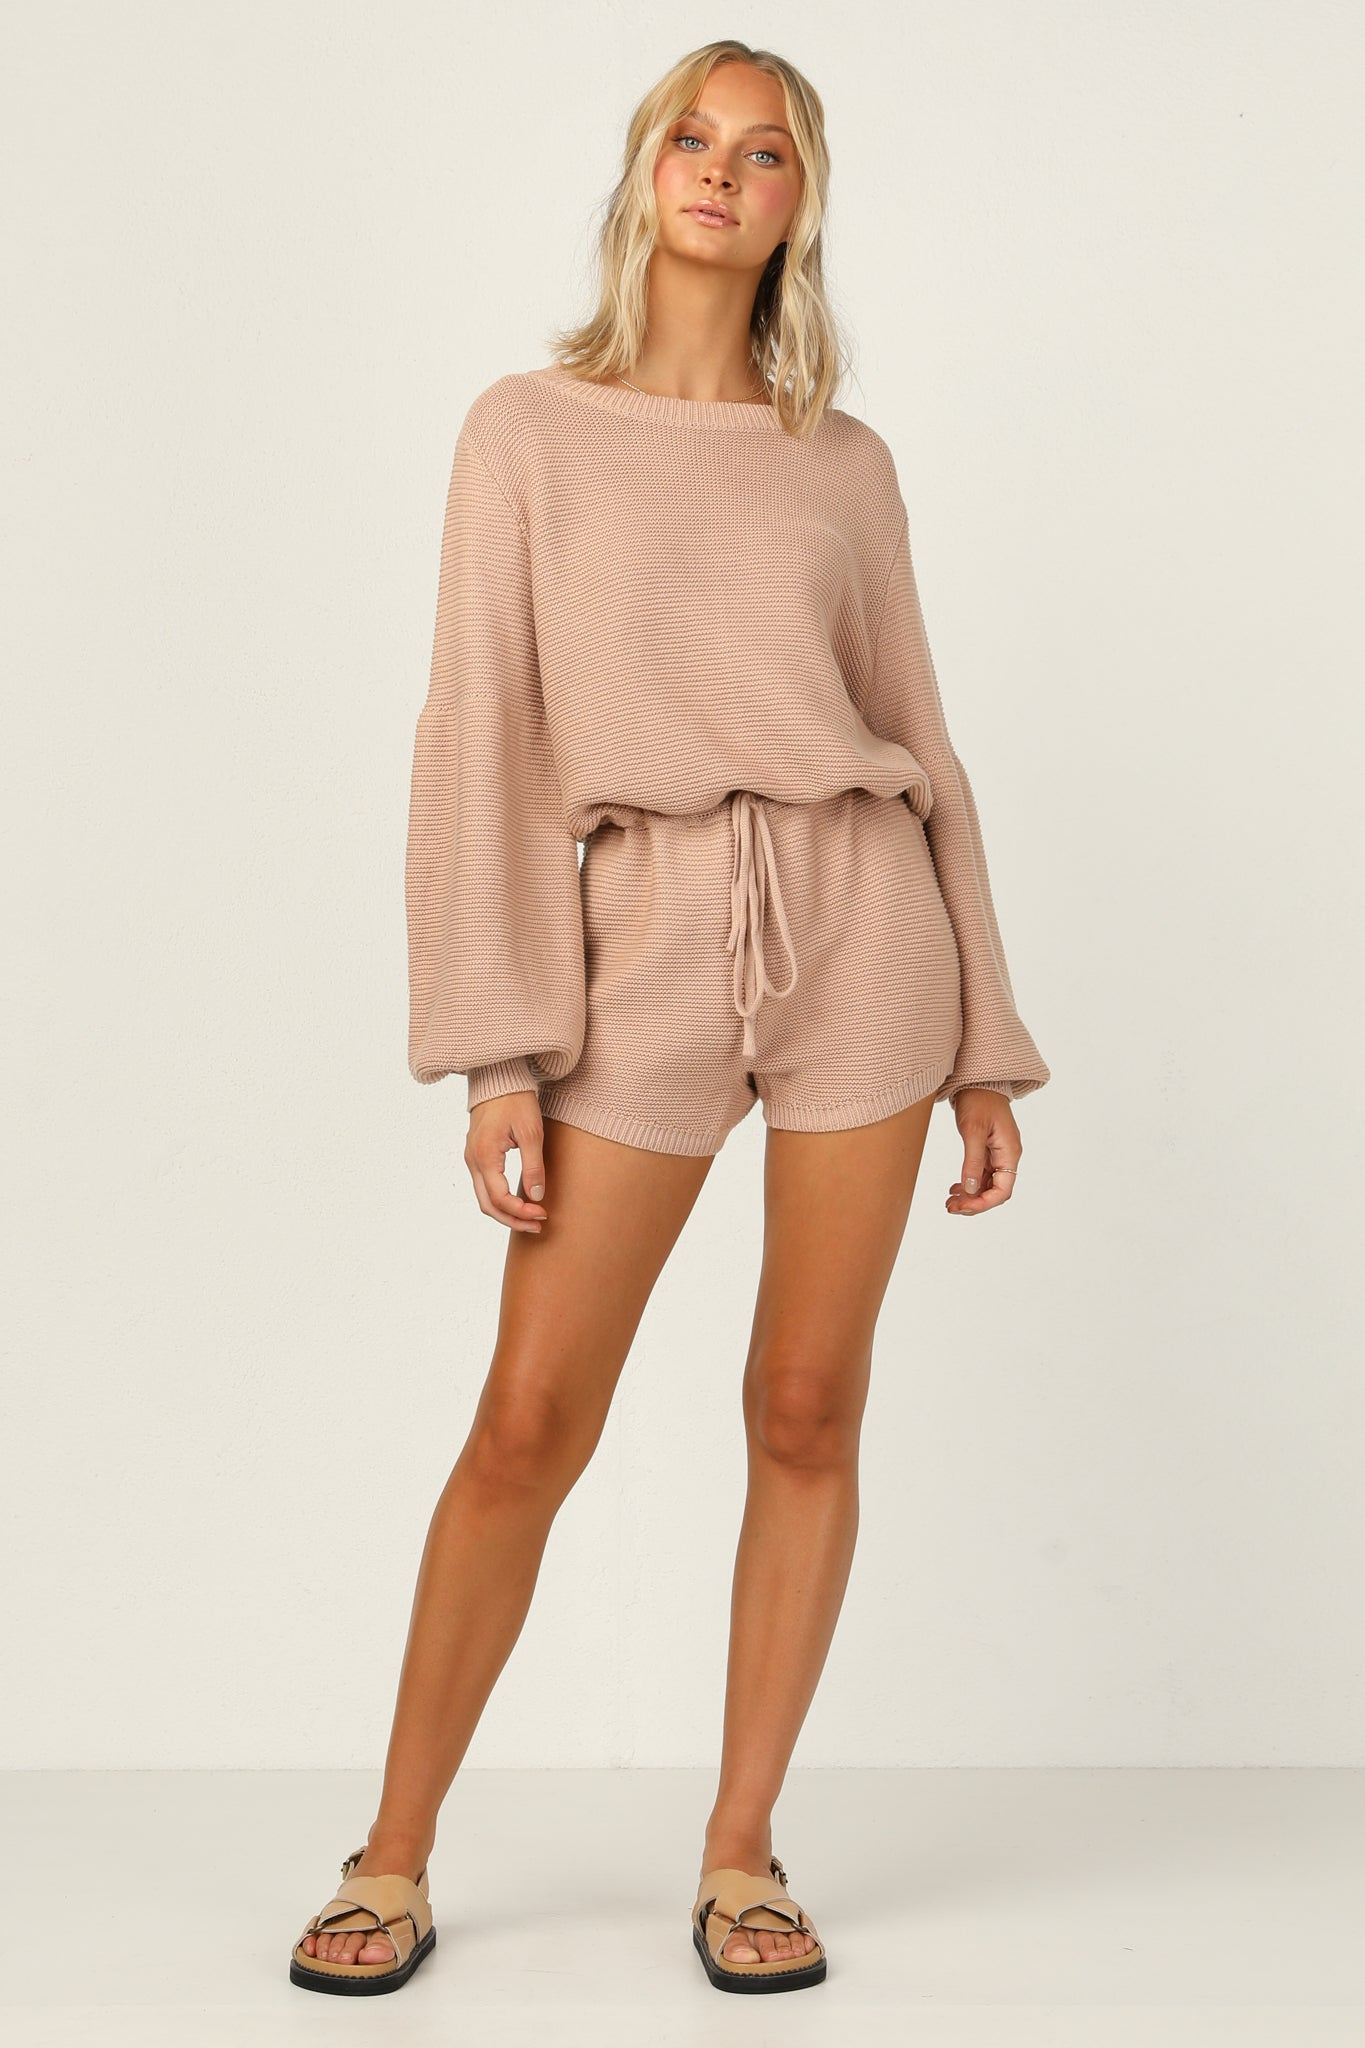 Ceejay Playsuit